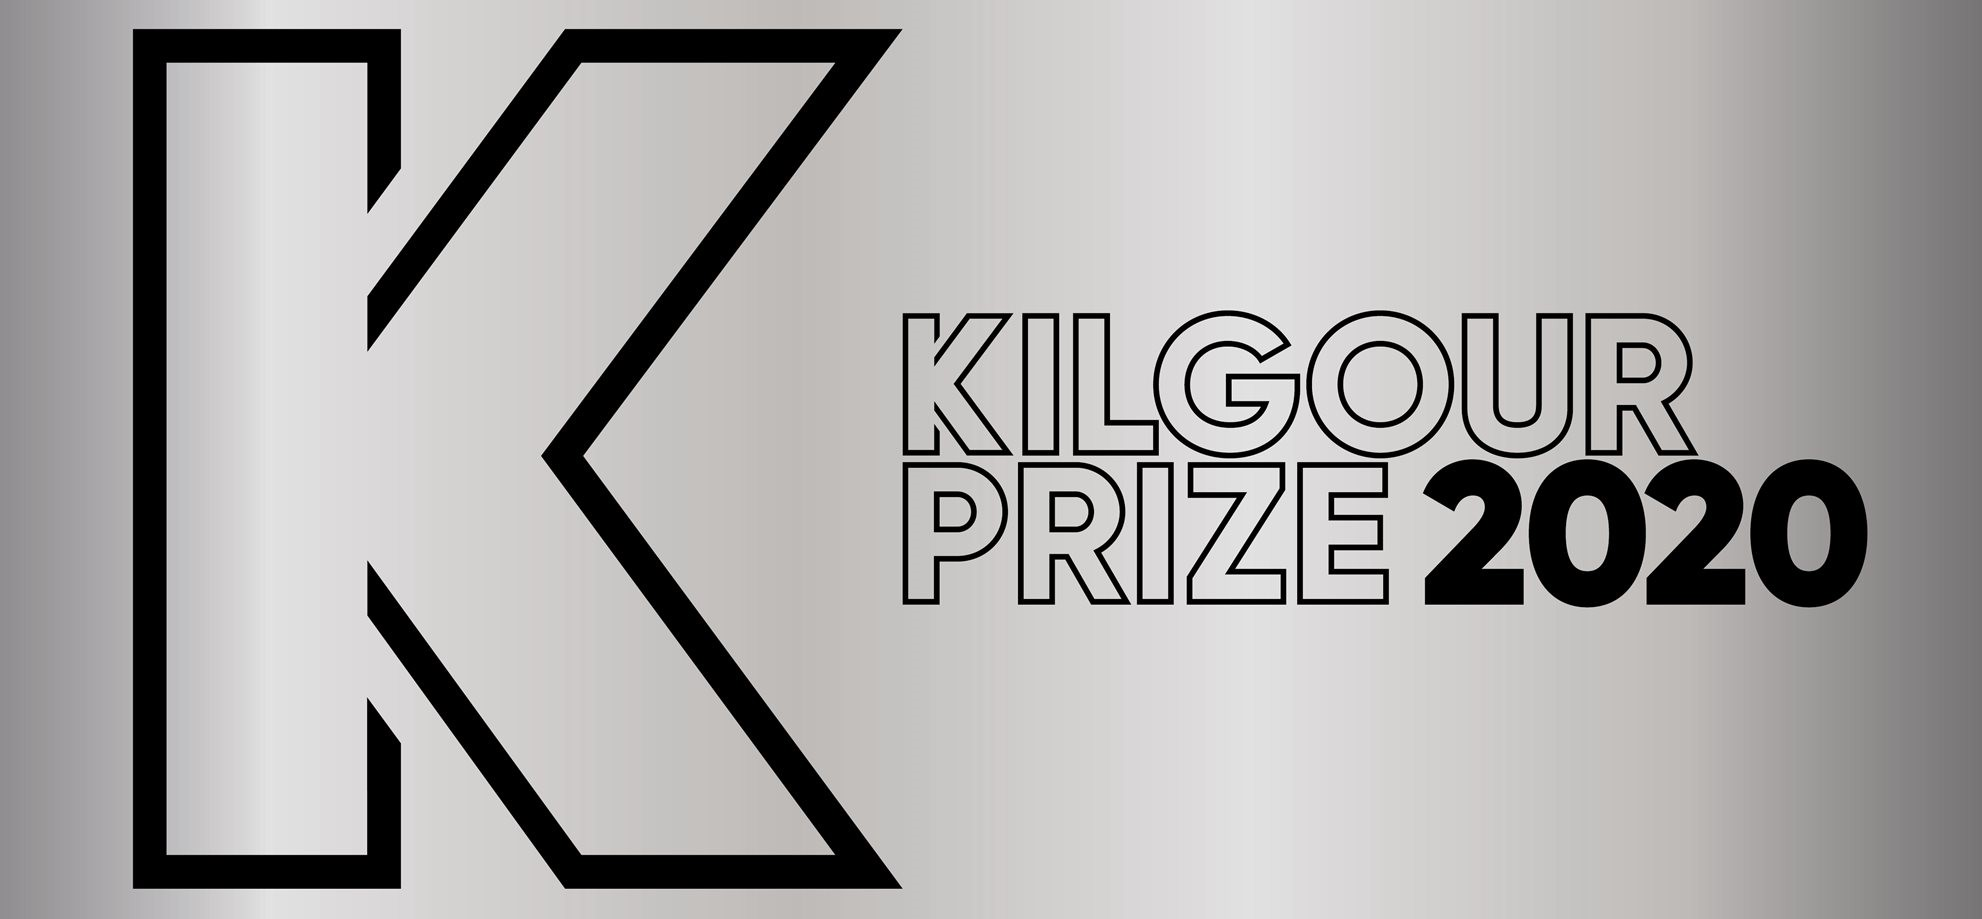 Kilgour Prize 2020 People's Choice awarded